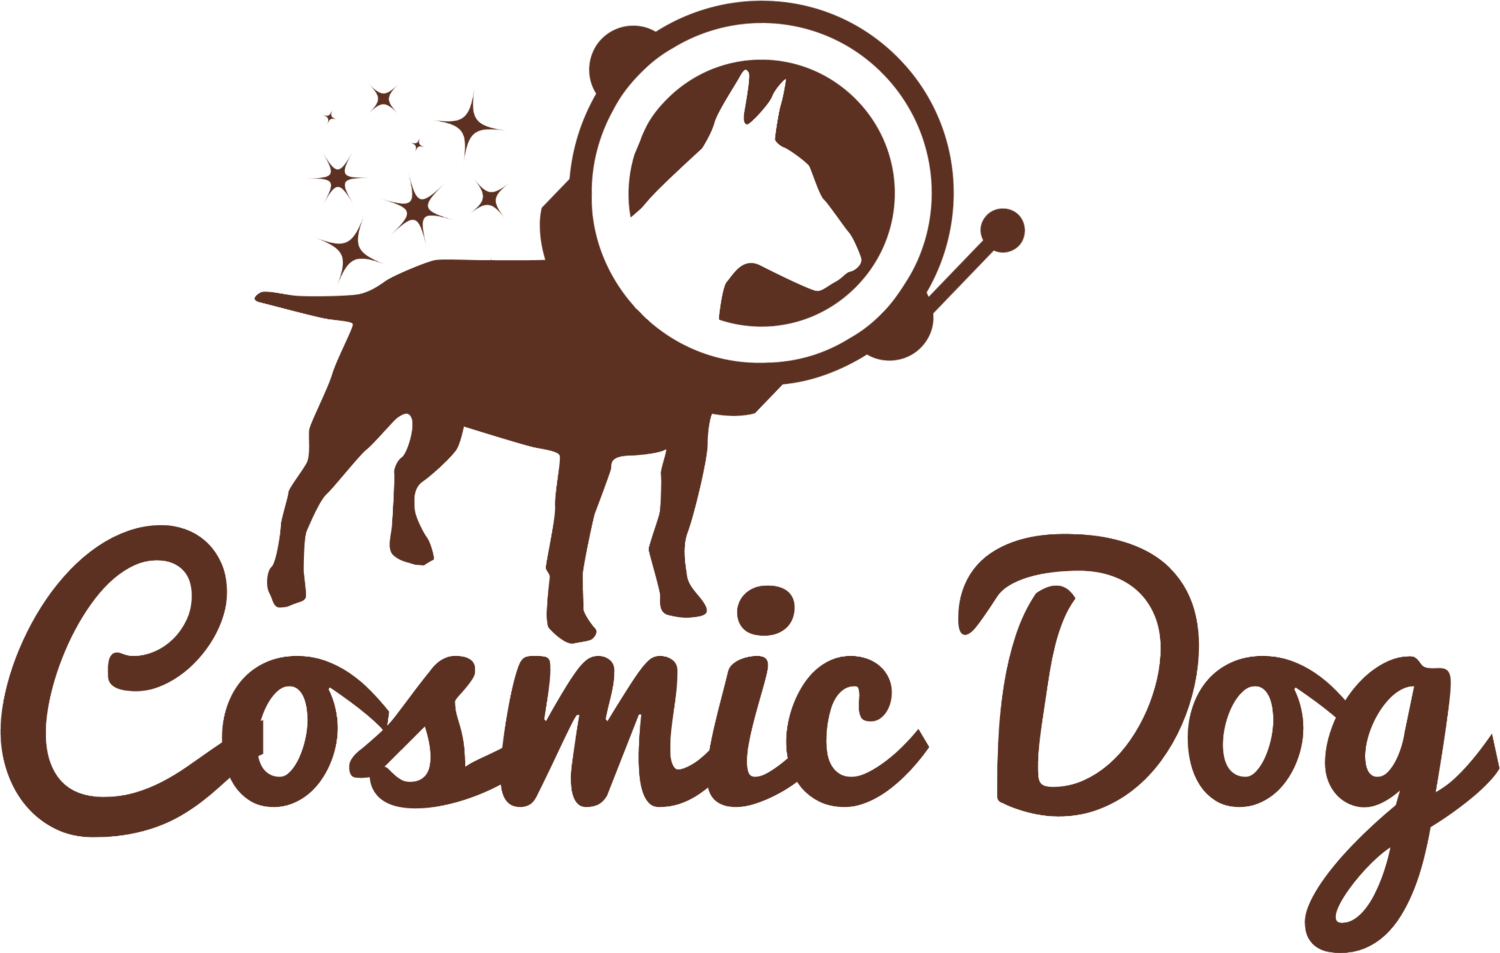 Cosmic Dog: Video & Photography